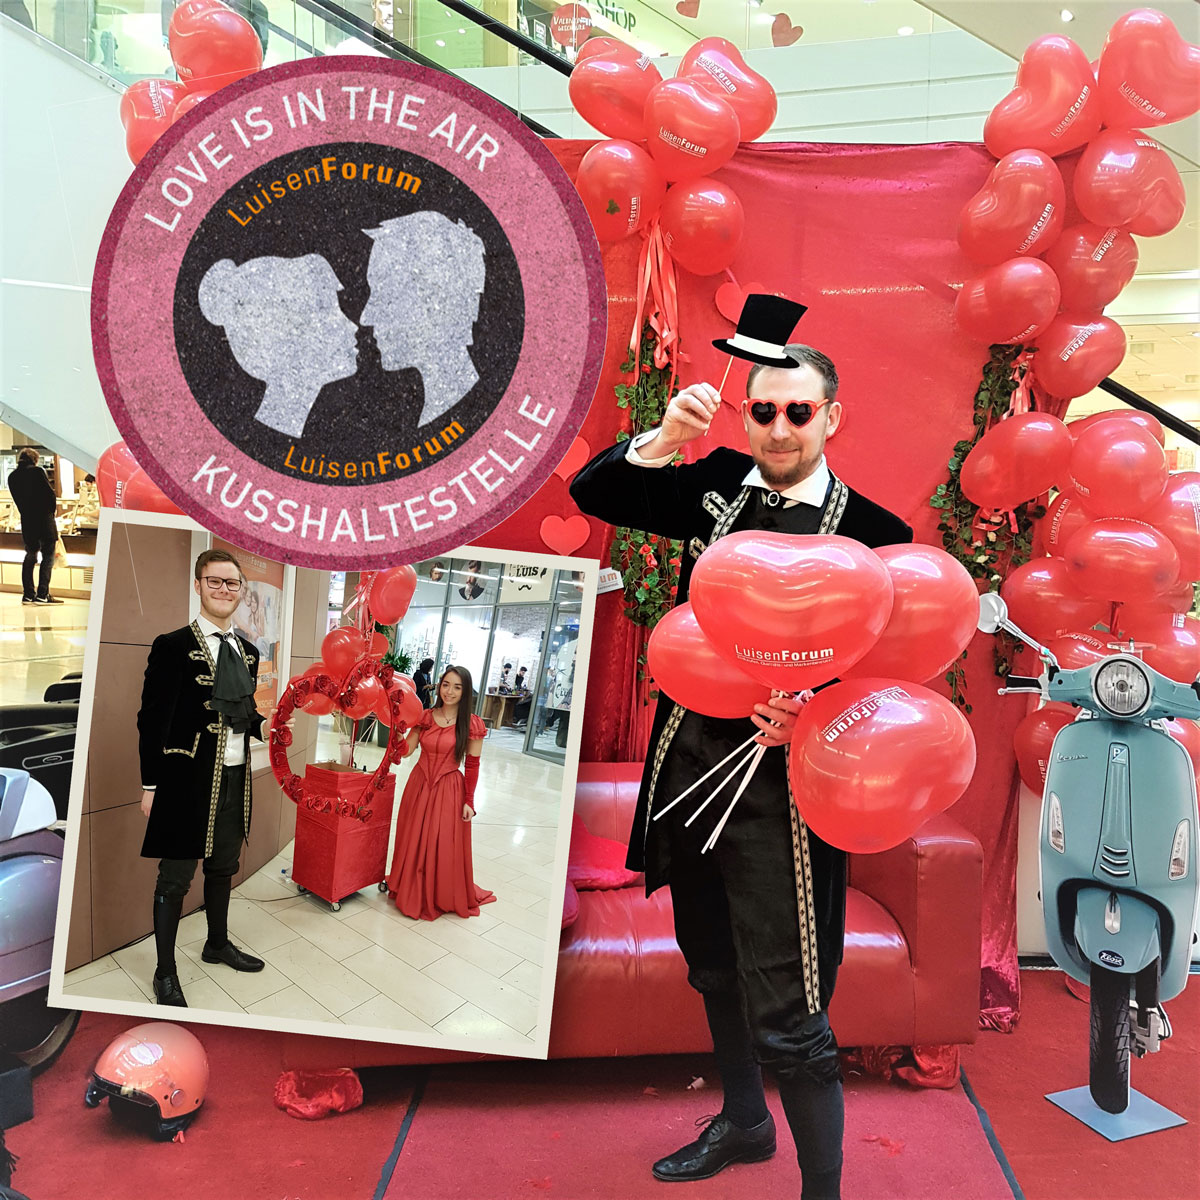 Love is in the air – Kusshaltestelle an Valentinstag im LuisenForum Wiesbaden